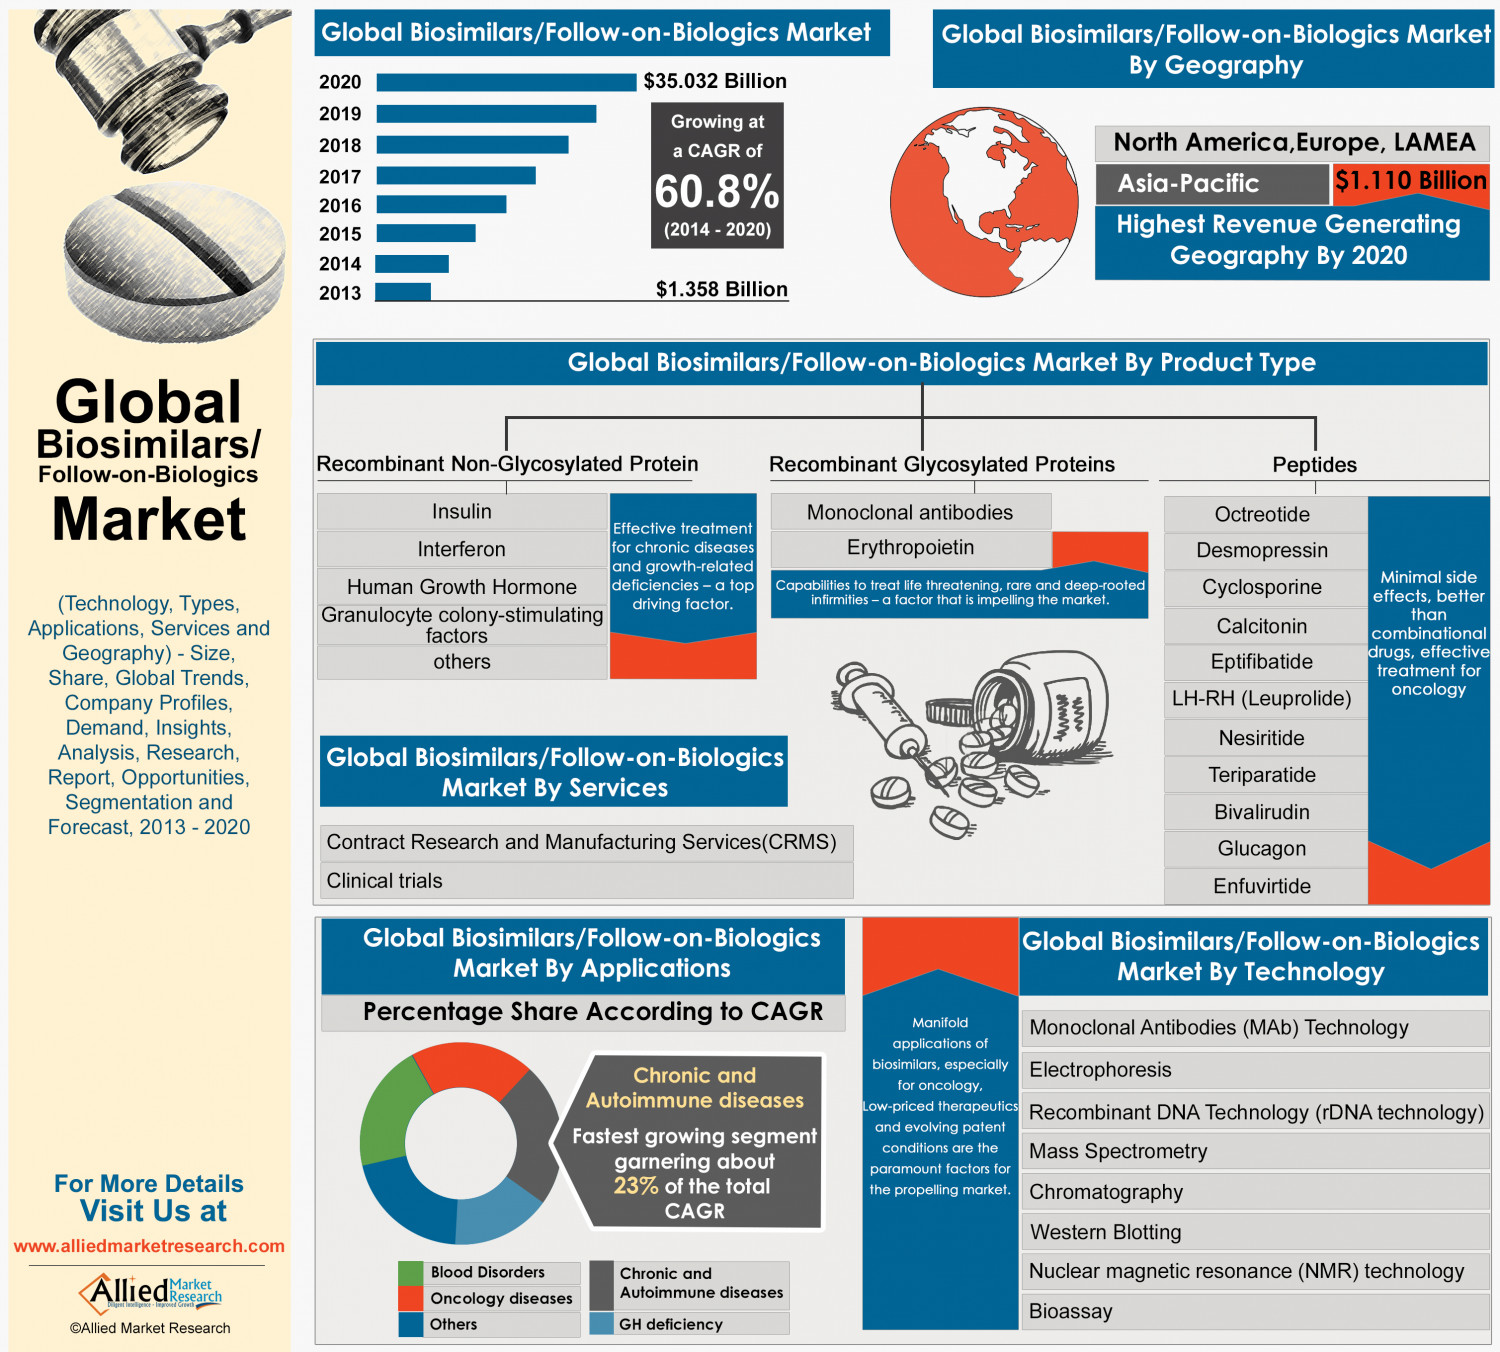 Biosimilars market to hit $35 billion by 2020, research suggests Infographic